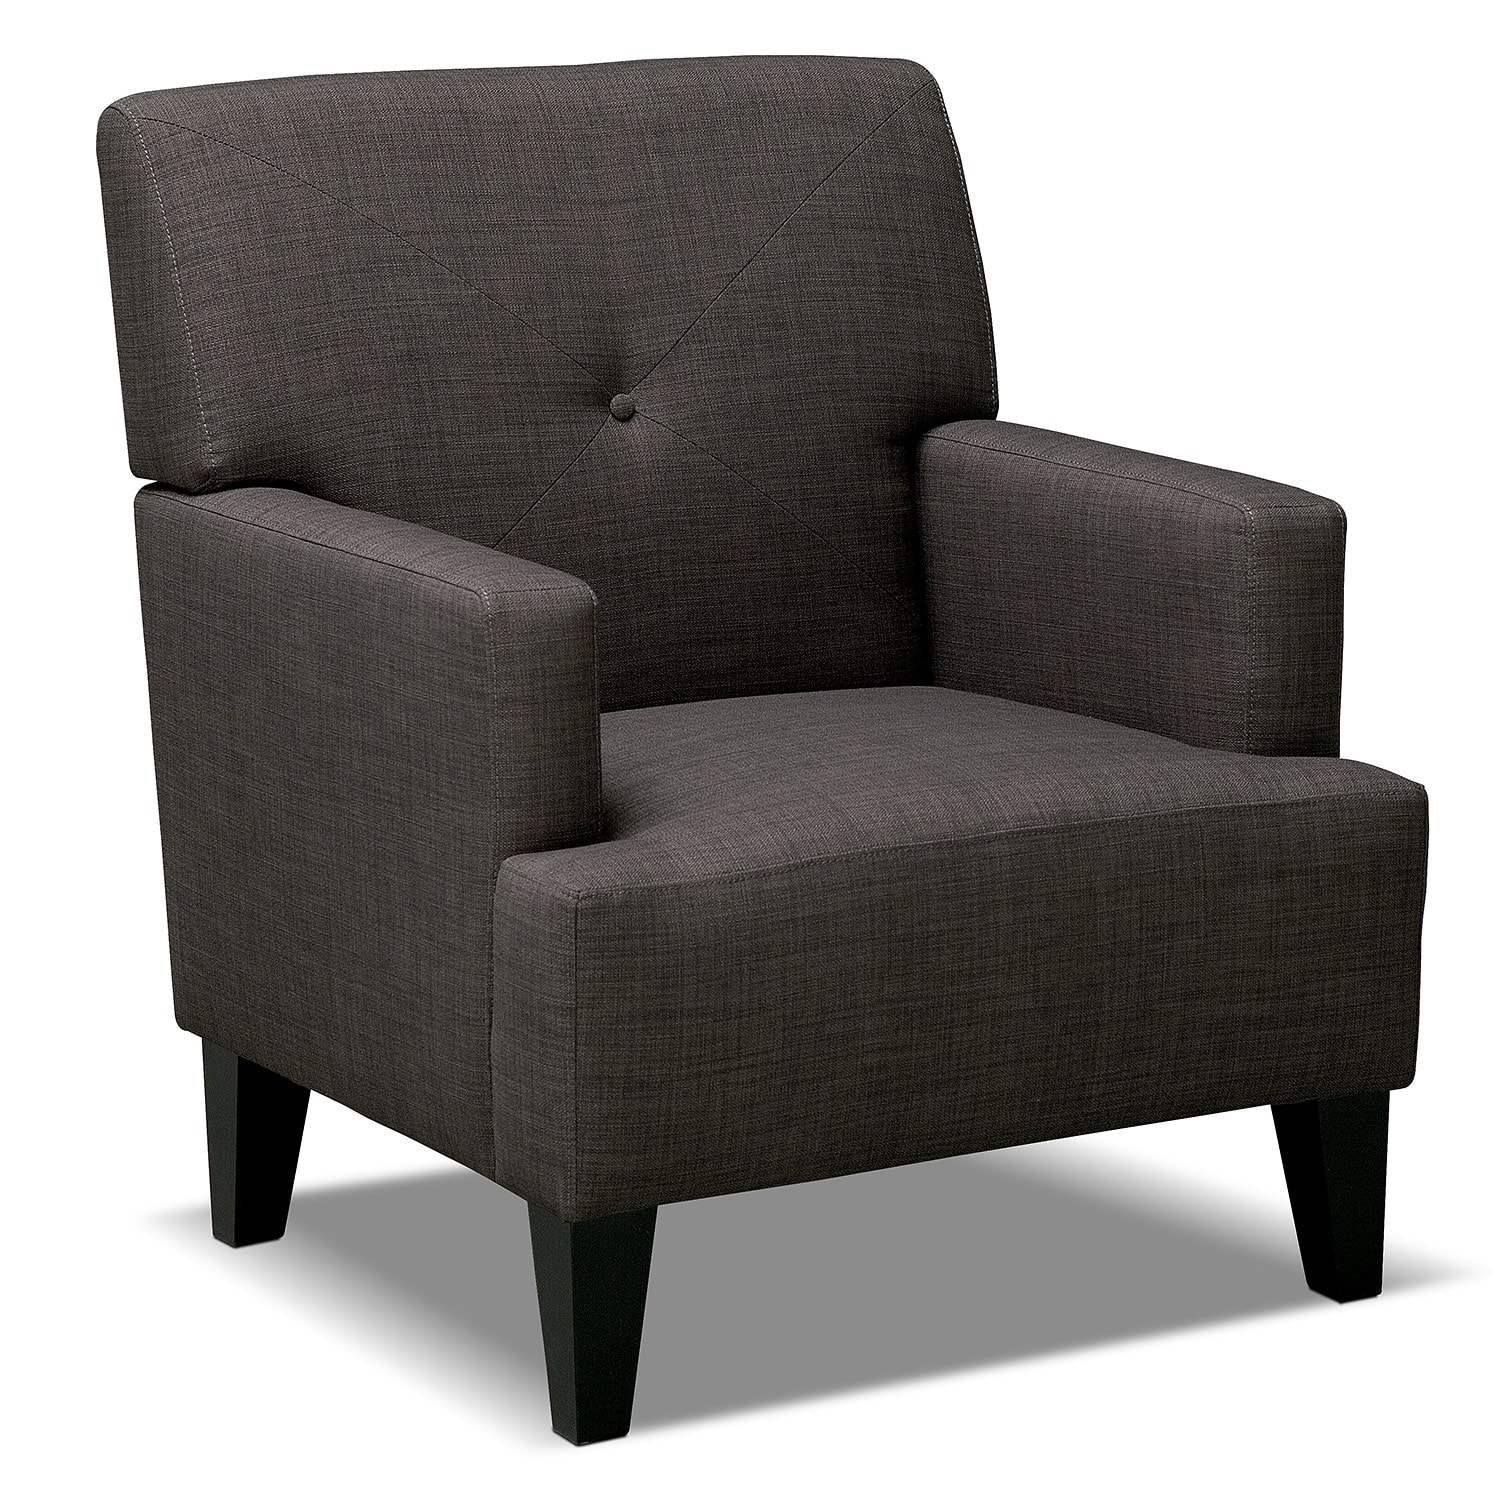 Avalon accent chair value city furniture for Occasional chairs for living room